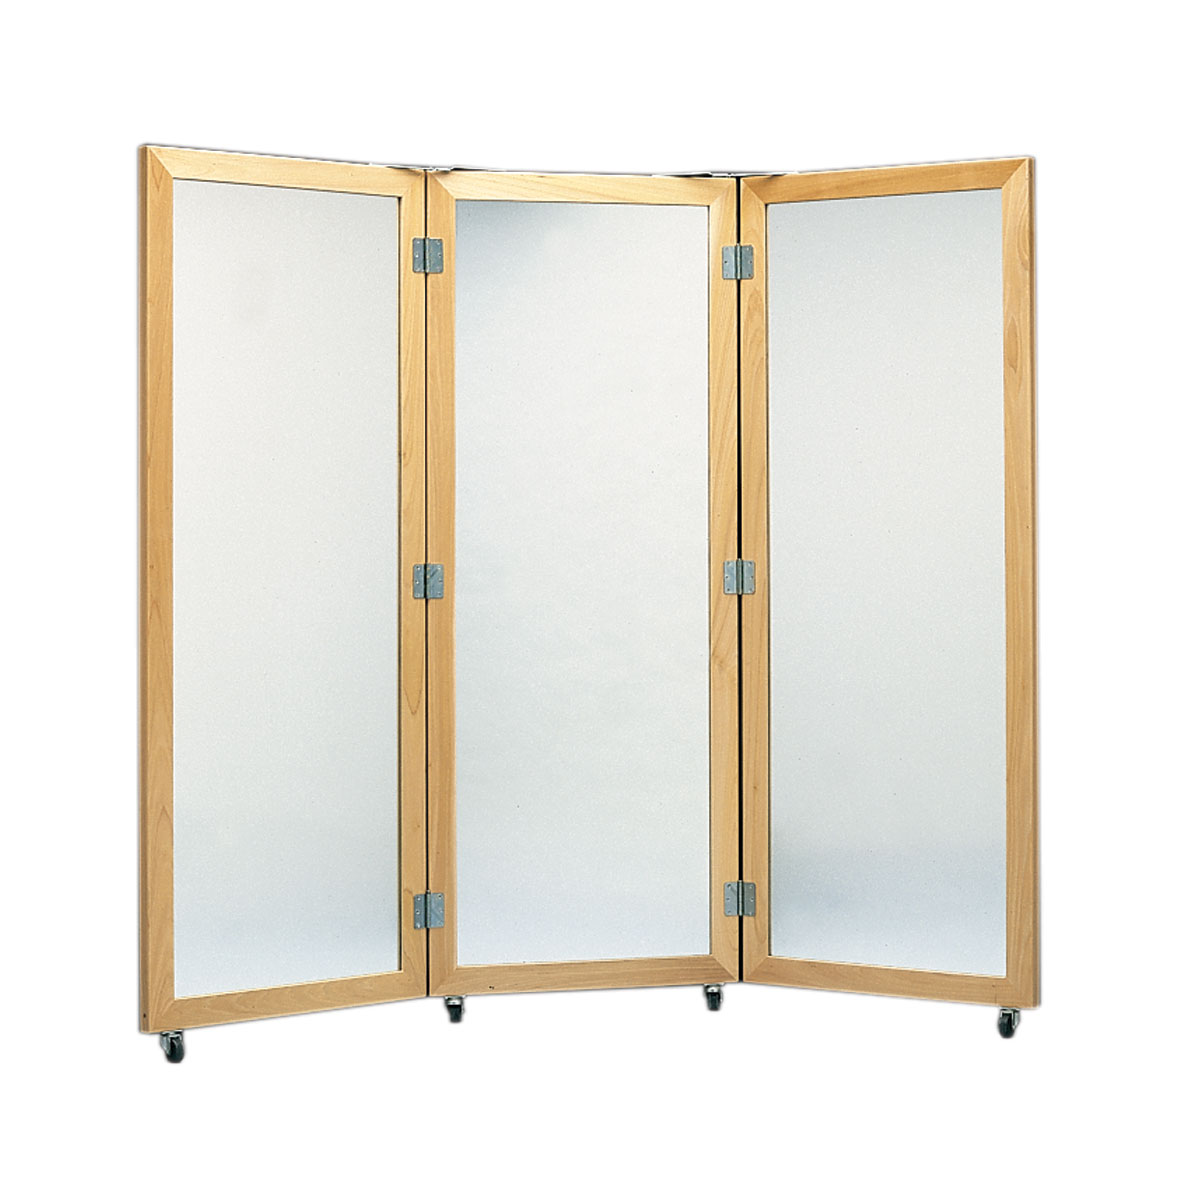 Full length 3 way mirror - Adult 3 Way Mobile Mirror